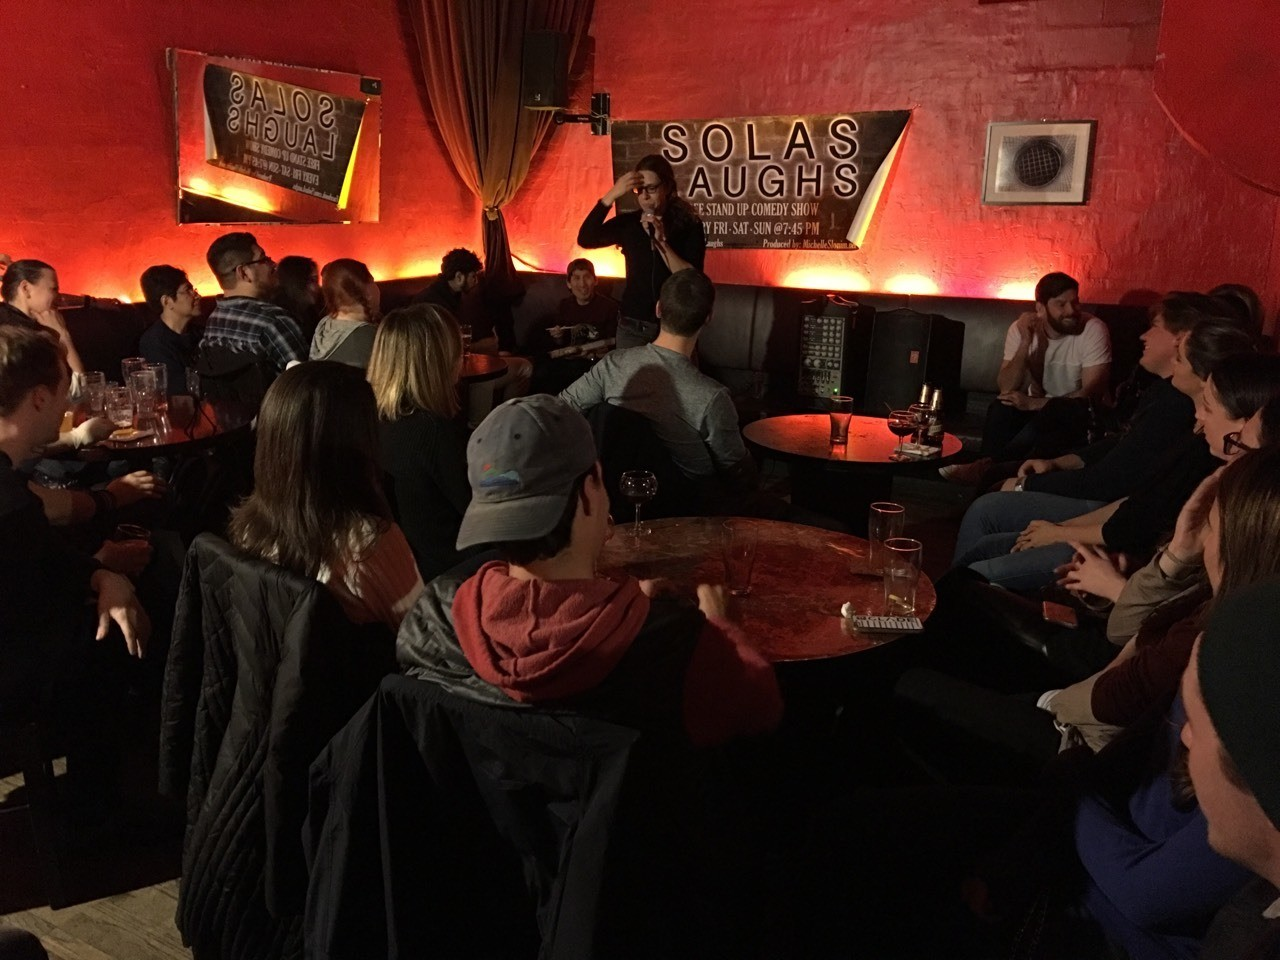 FREE comedy show every Friday, Saturday and Sunday at 7:45pm at Solas (232 E9th St, East Village, New York; New York, 2nd floor of venue) with free drink raffles